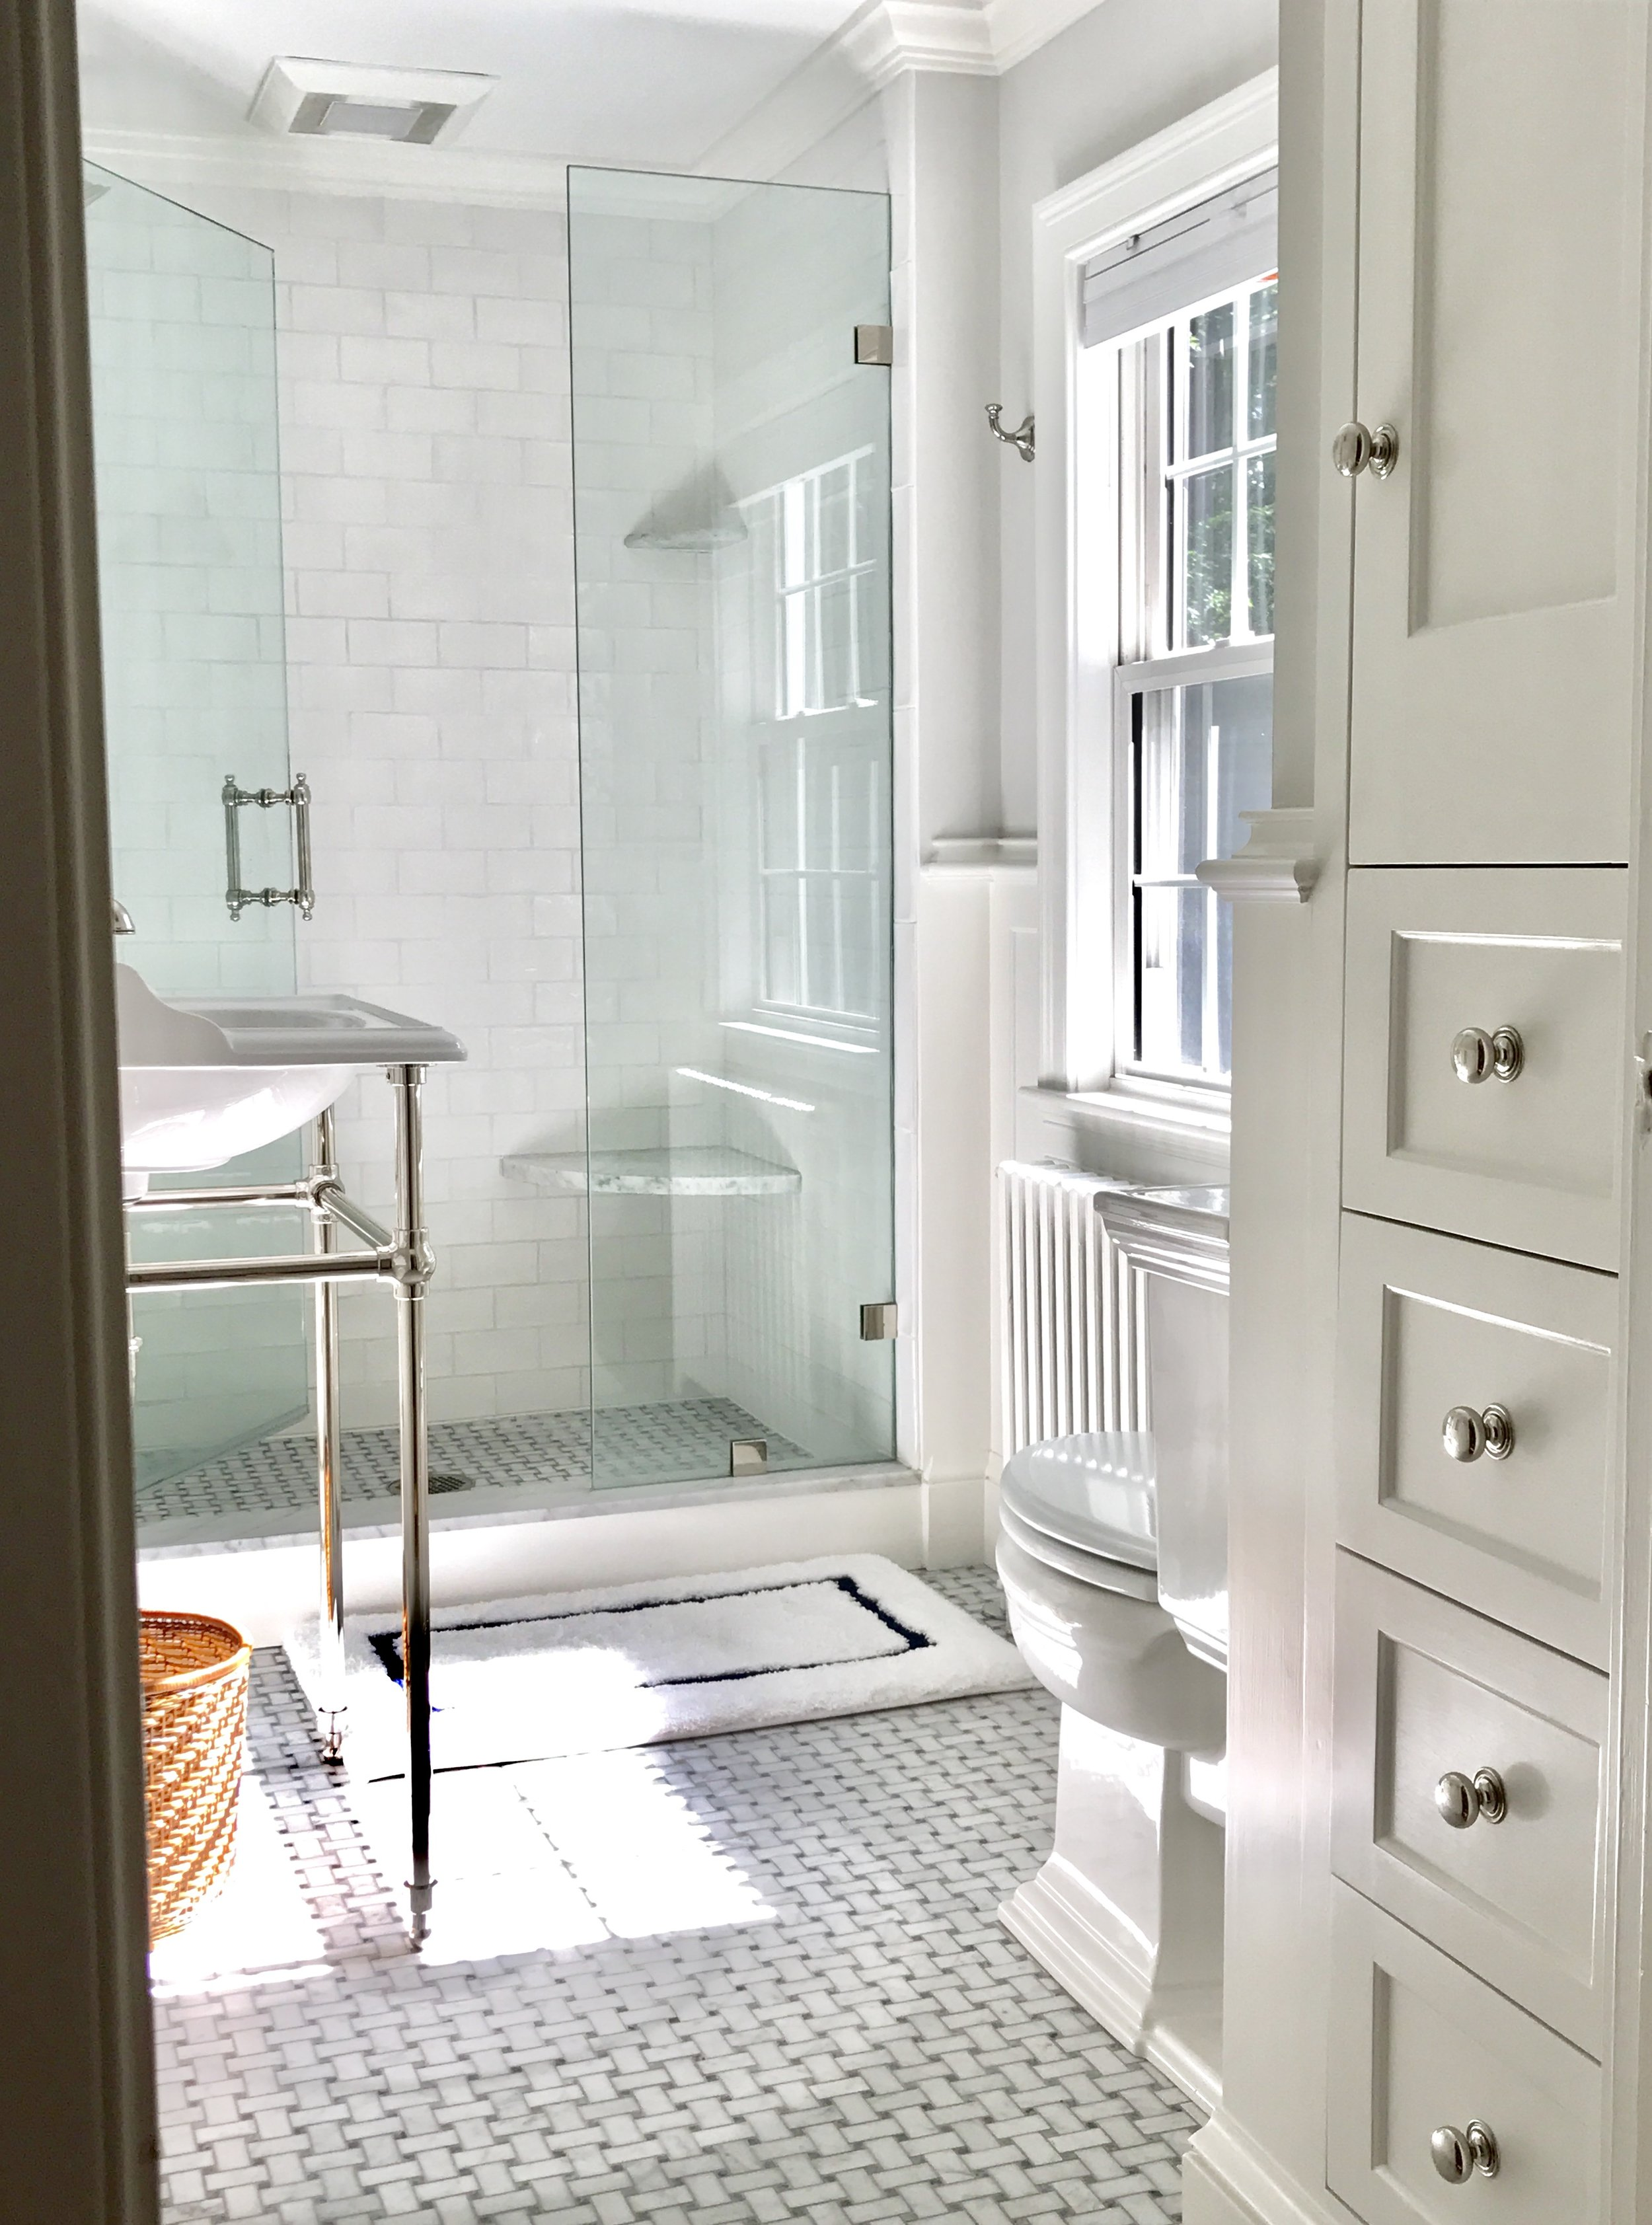 Newly renovated bathroom. A custom shower replaced the old circa 1941 bath tub. Carrara marble seat adds comfort with the ease of cleaning. Traditional marble basket weave floor tiles added a timeless look along with the new console sink and polished nickel fixtures by Perrin & Rowe.